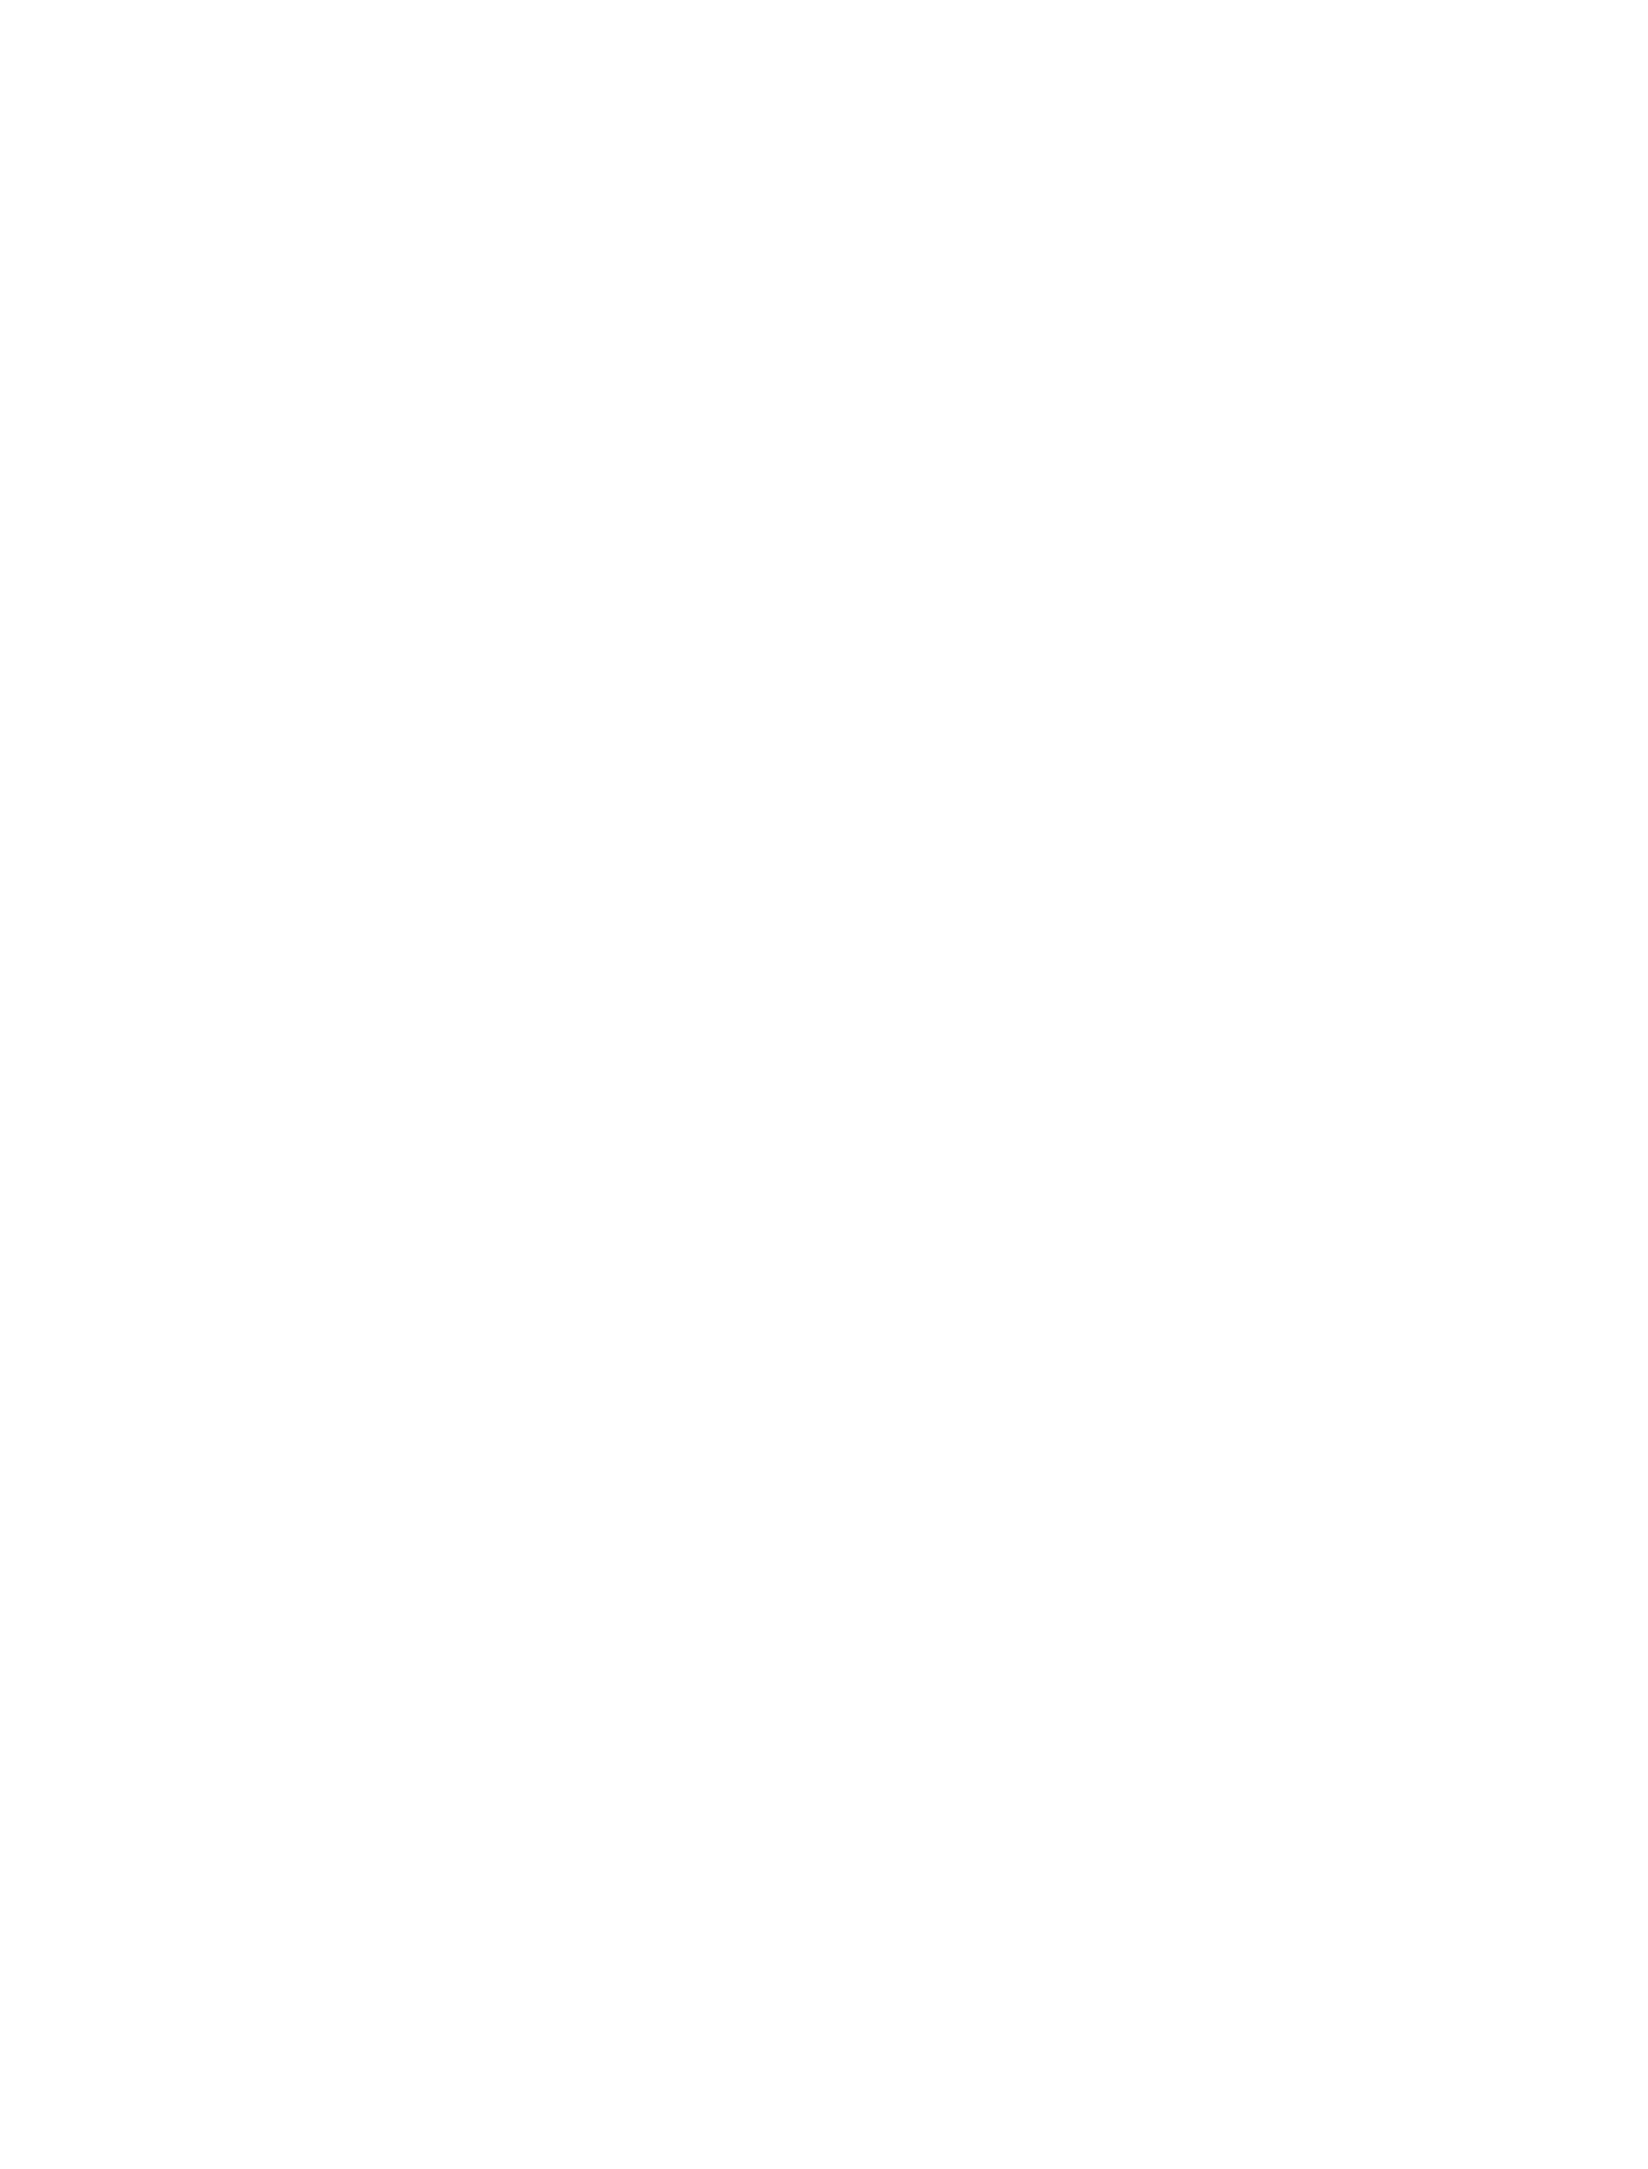 EveryOne. Passion Commune